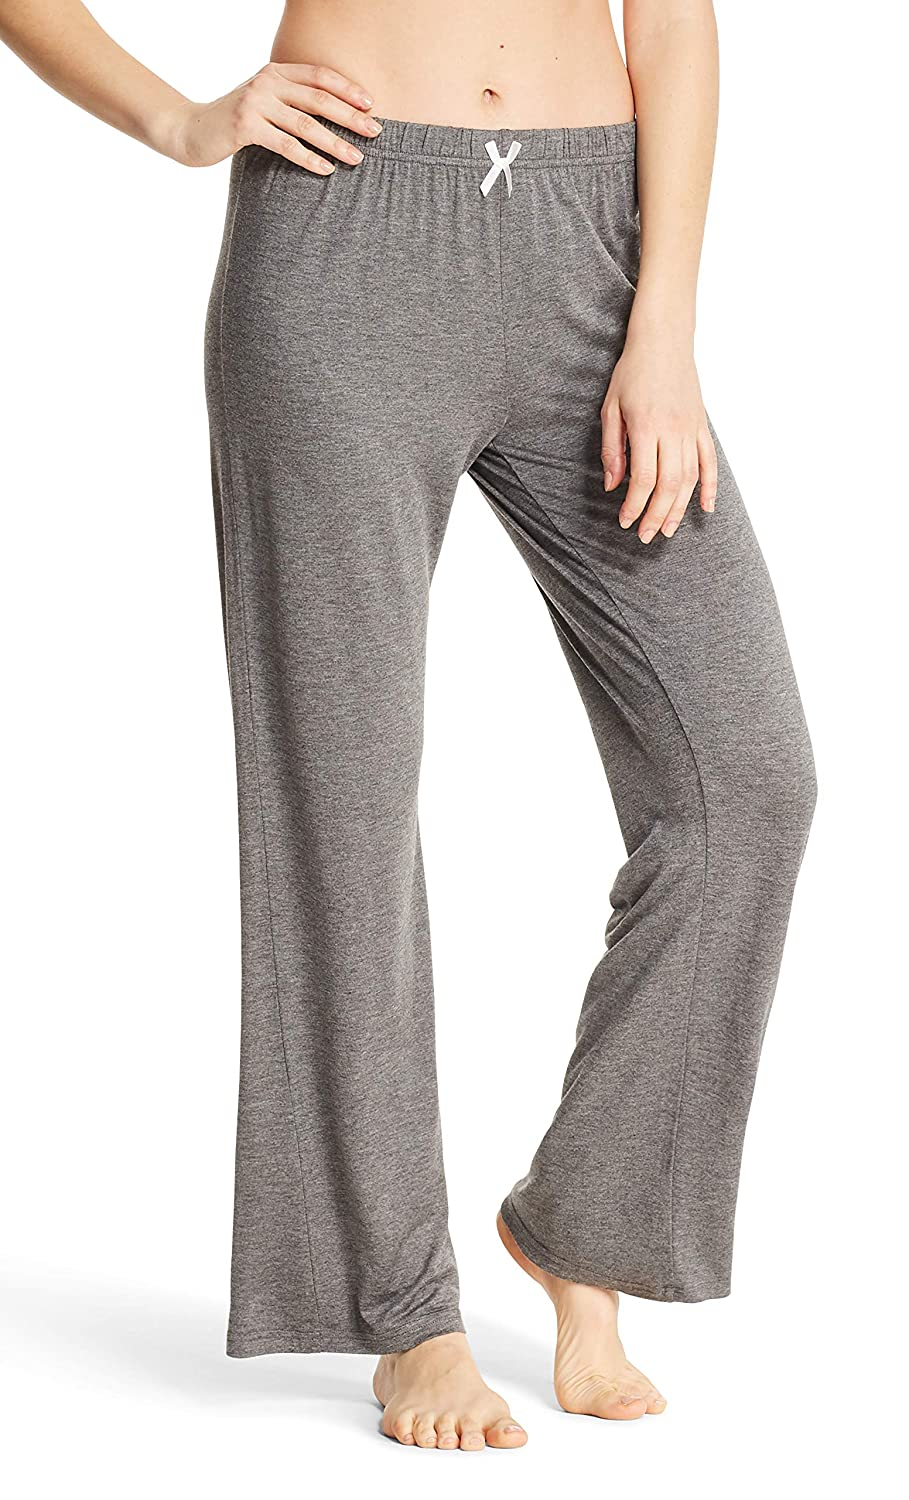 fb9ca57596 Amazon.com: Kathy Ireland Womens Straight Leg Elastic Waist Lounge Pajama  Sleep Pants: Clothing